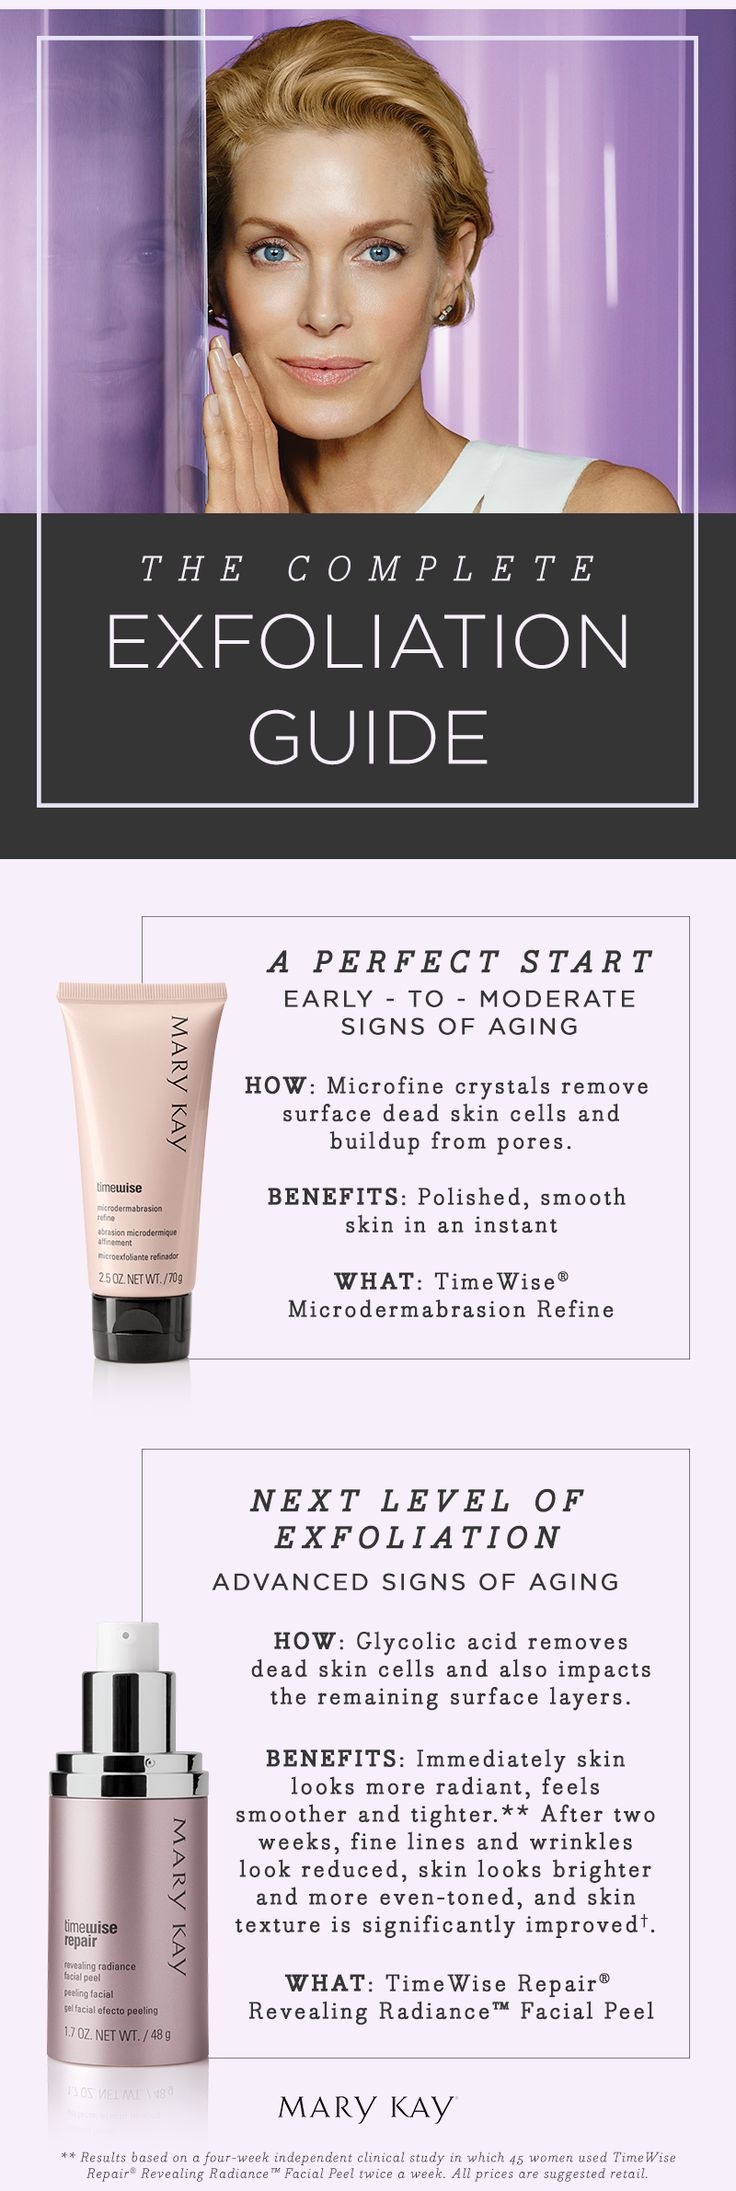 Exfoliation should be a key part of every woman's skin care regimen. It keeps skin healthy and helps with the skin's renewal process. | Mary Kay